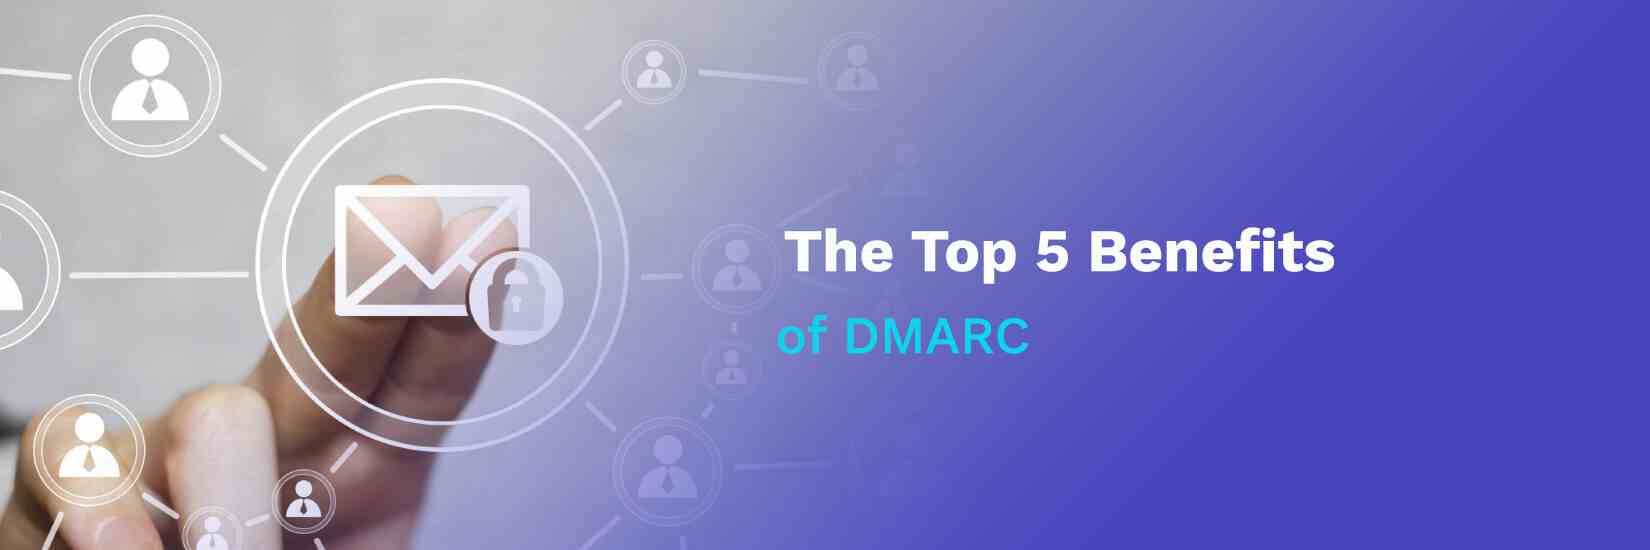 What is DMARC? The Top 5 Benefits of DMARC!